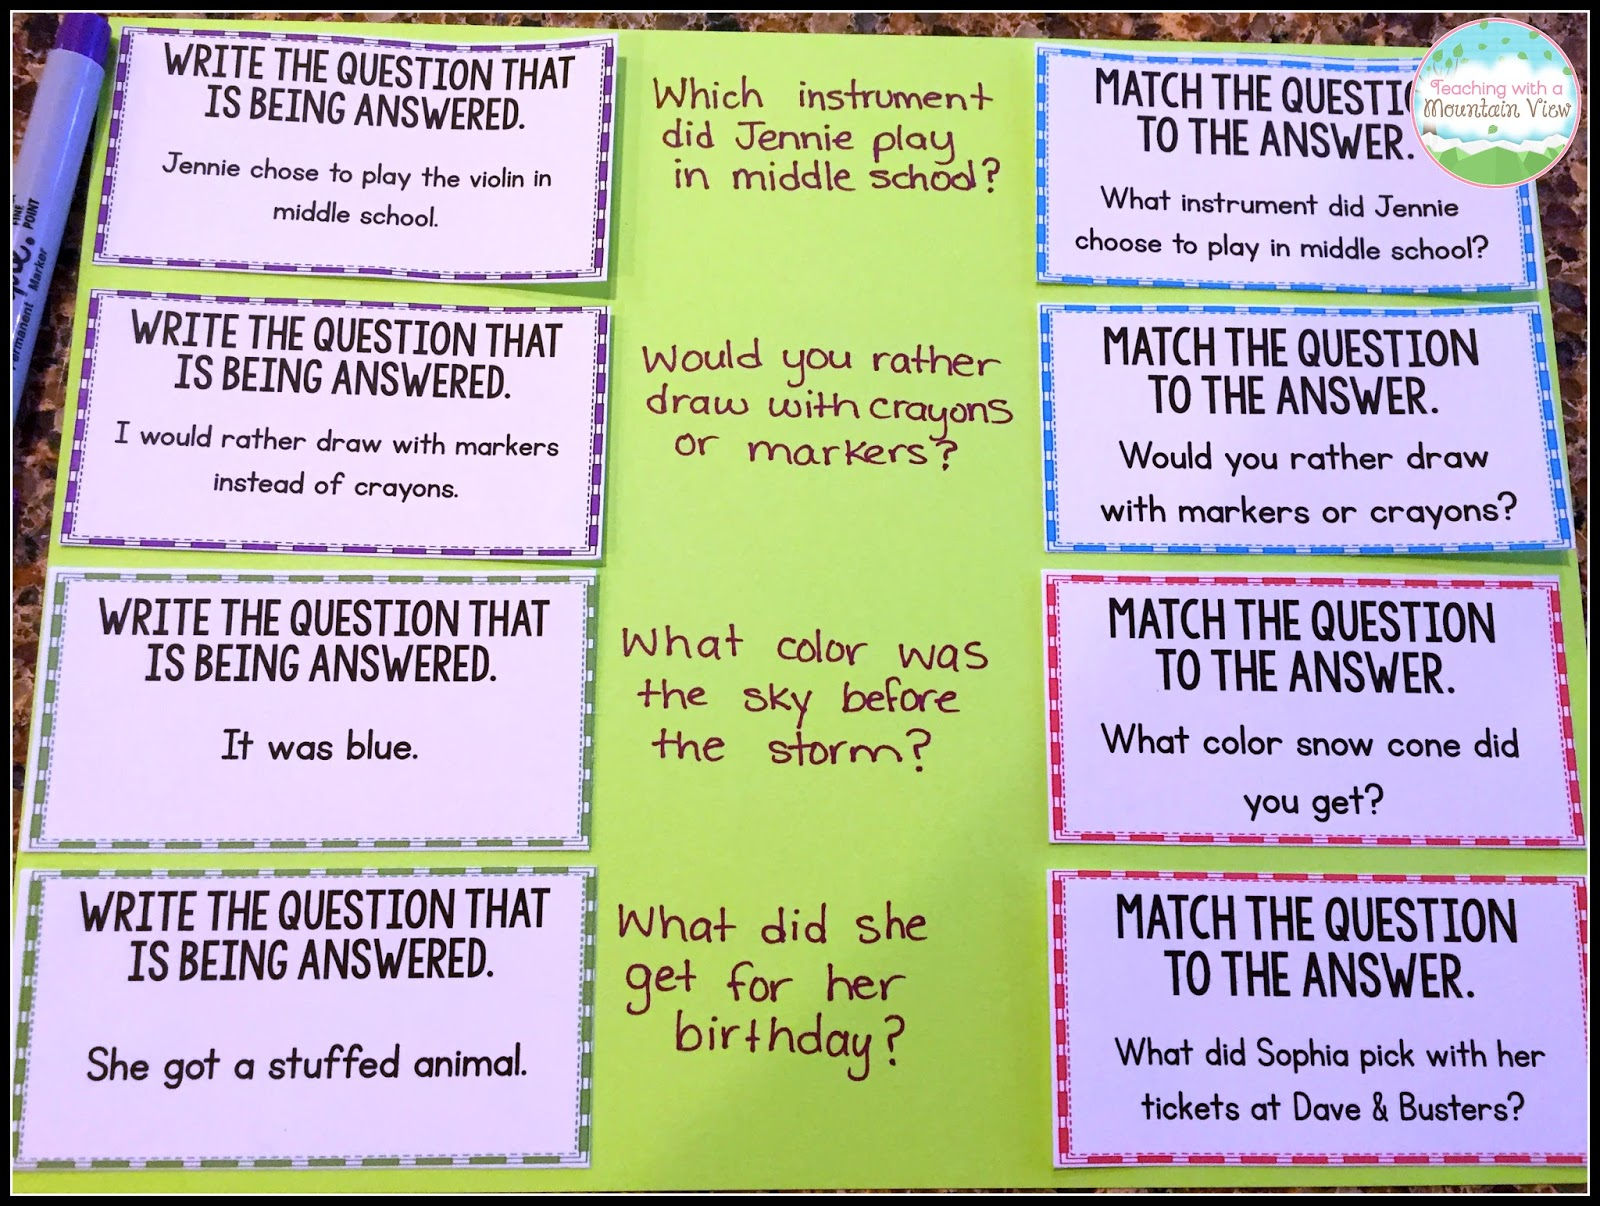 hight resolution of Restating the Question Lesson   Teaching With a Mountain View   Bloglovin'